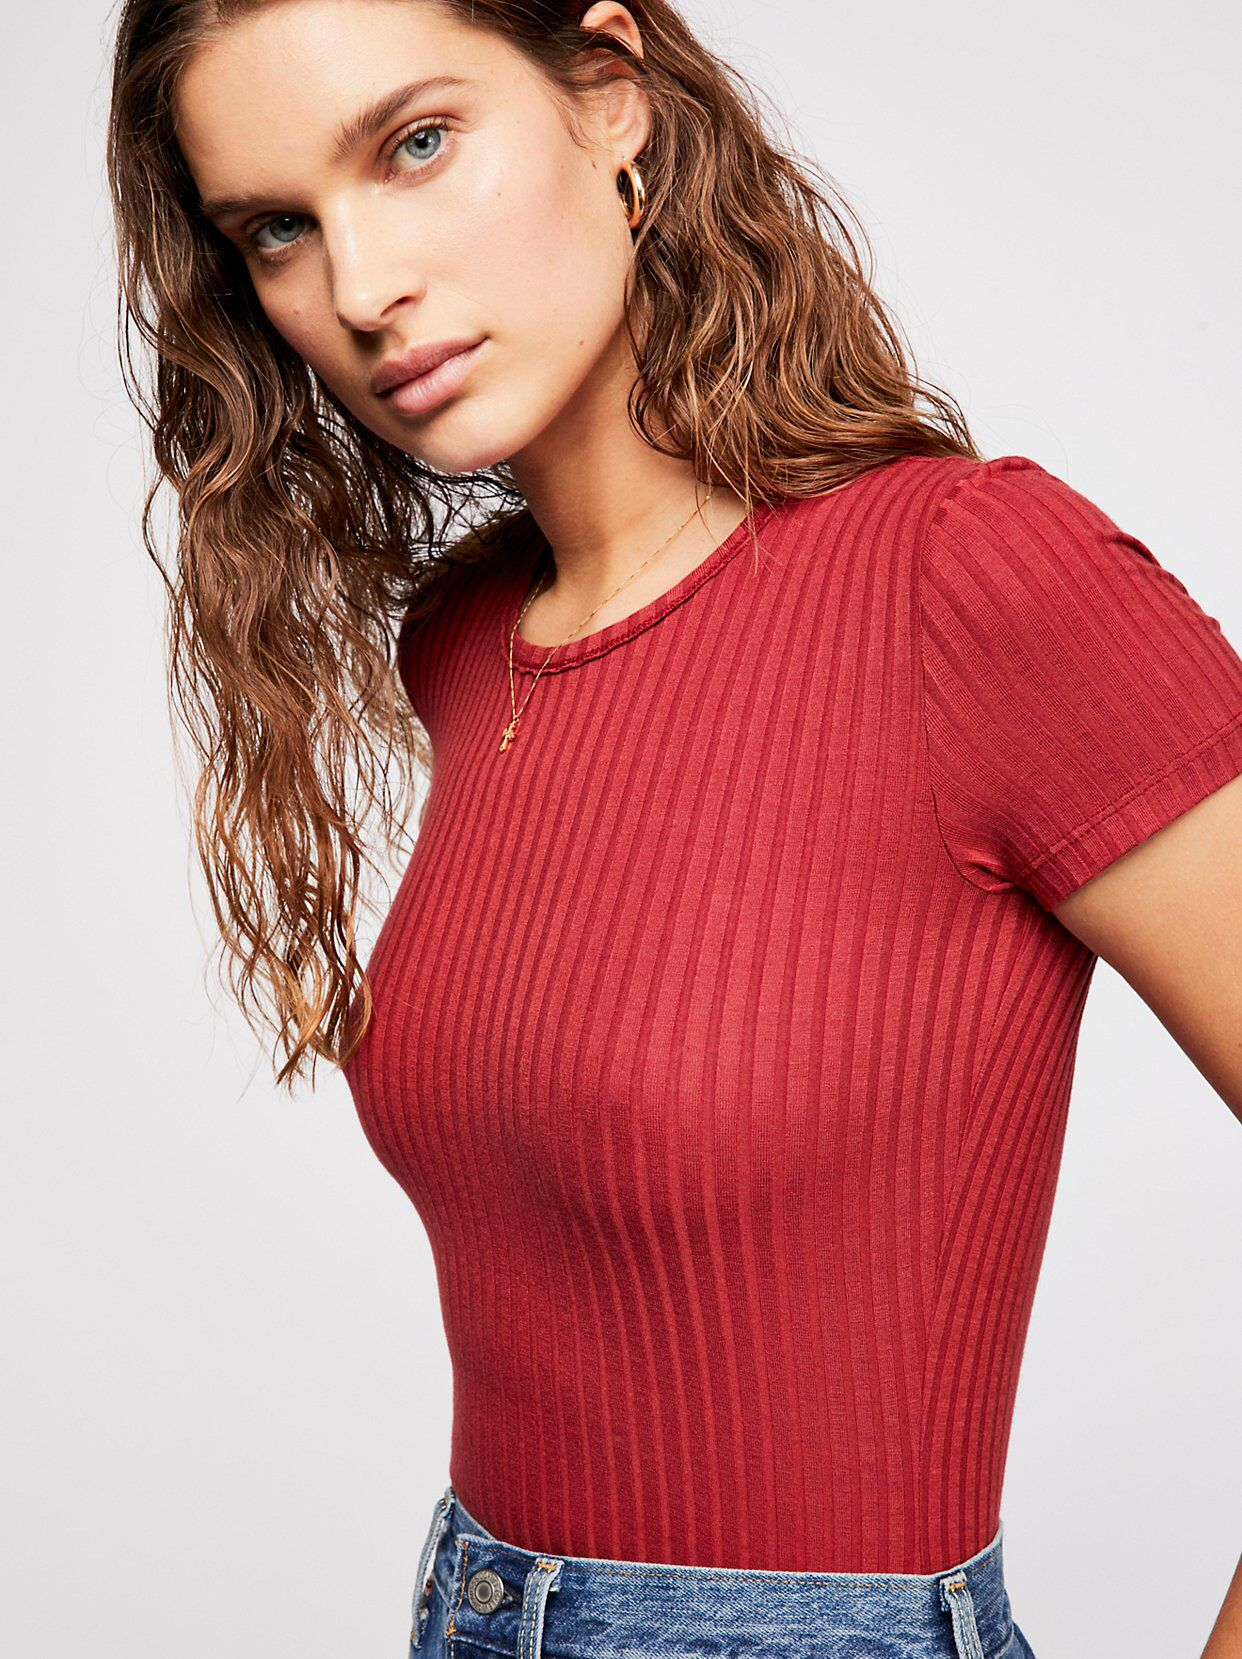 6534de1af790f0 Baby Rib Tee from Free People!